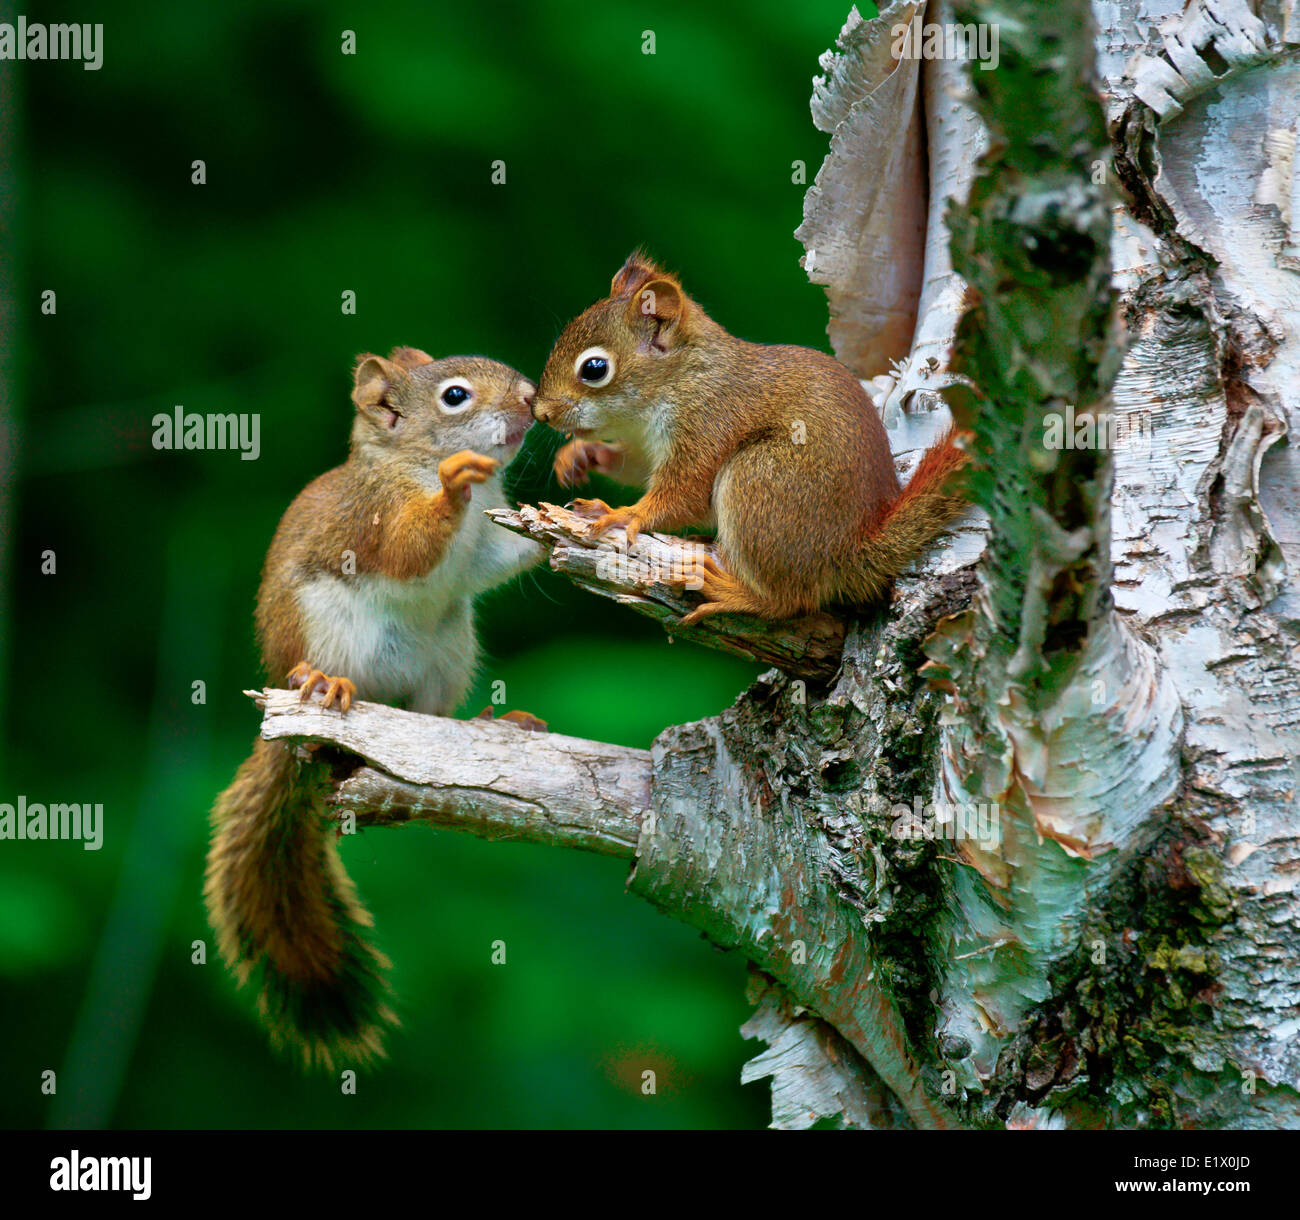 Young American red squirrel (Tamiasciurus hudsonicus) is one three species tree squirrel currently classified in the genus Stock Photo